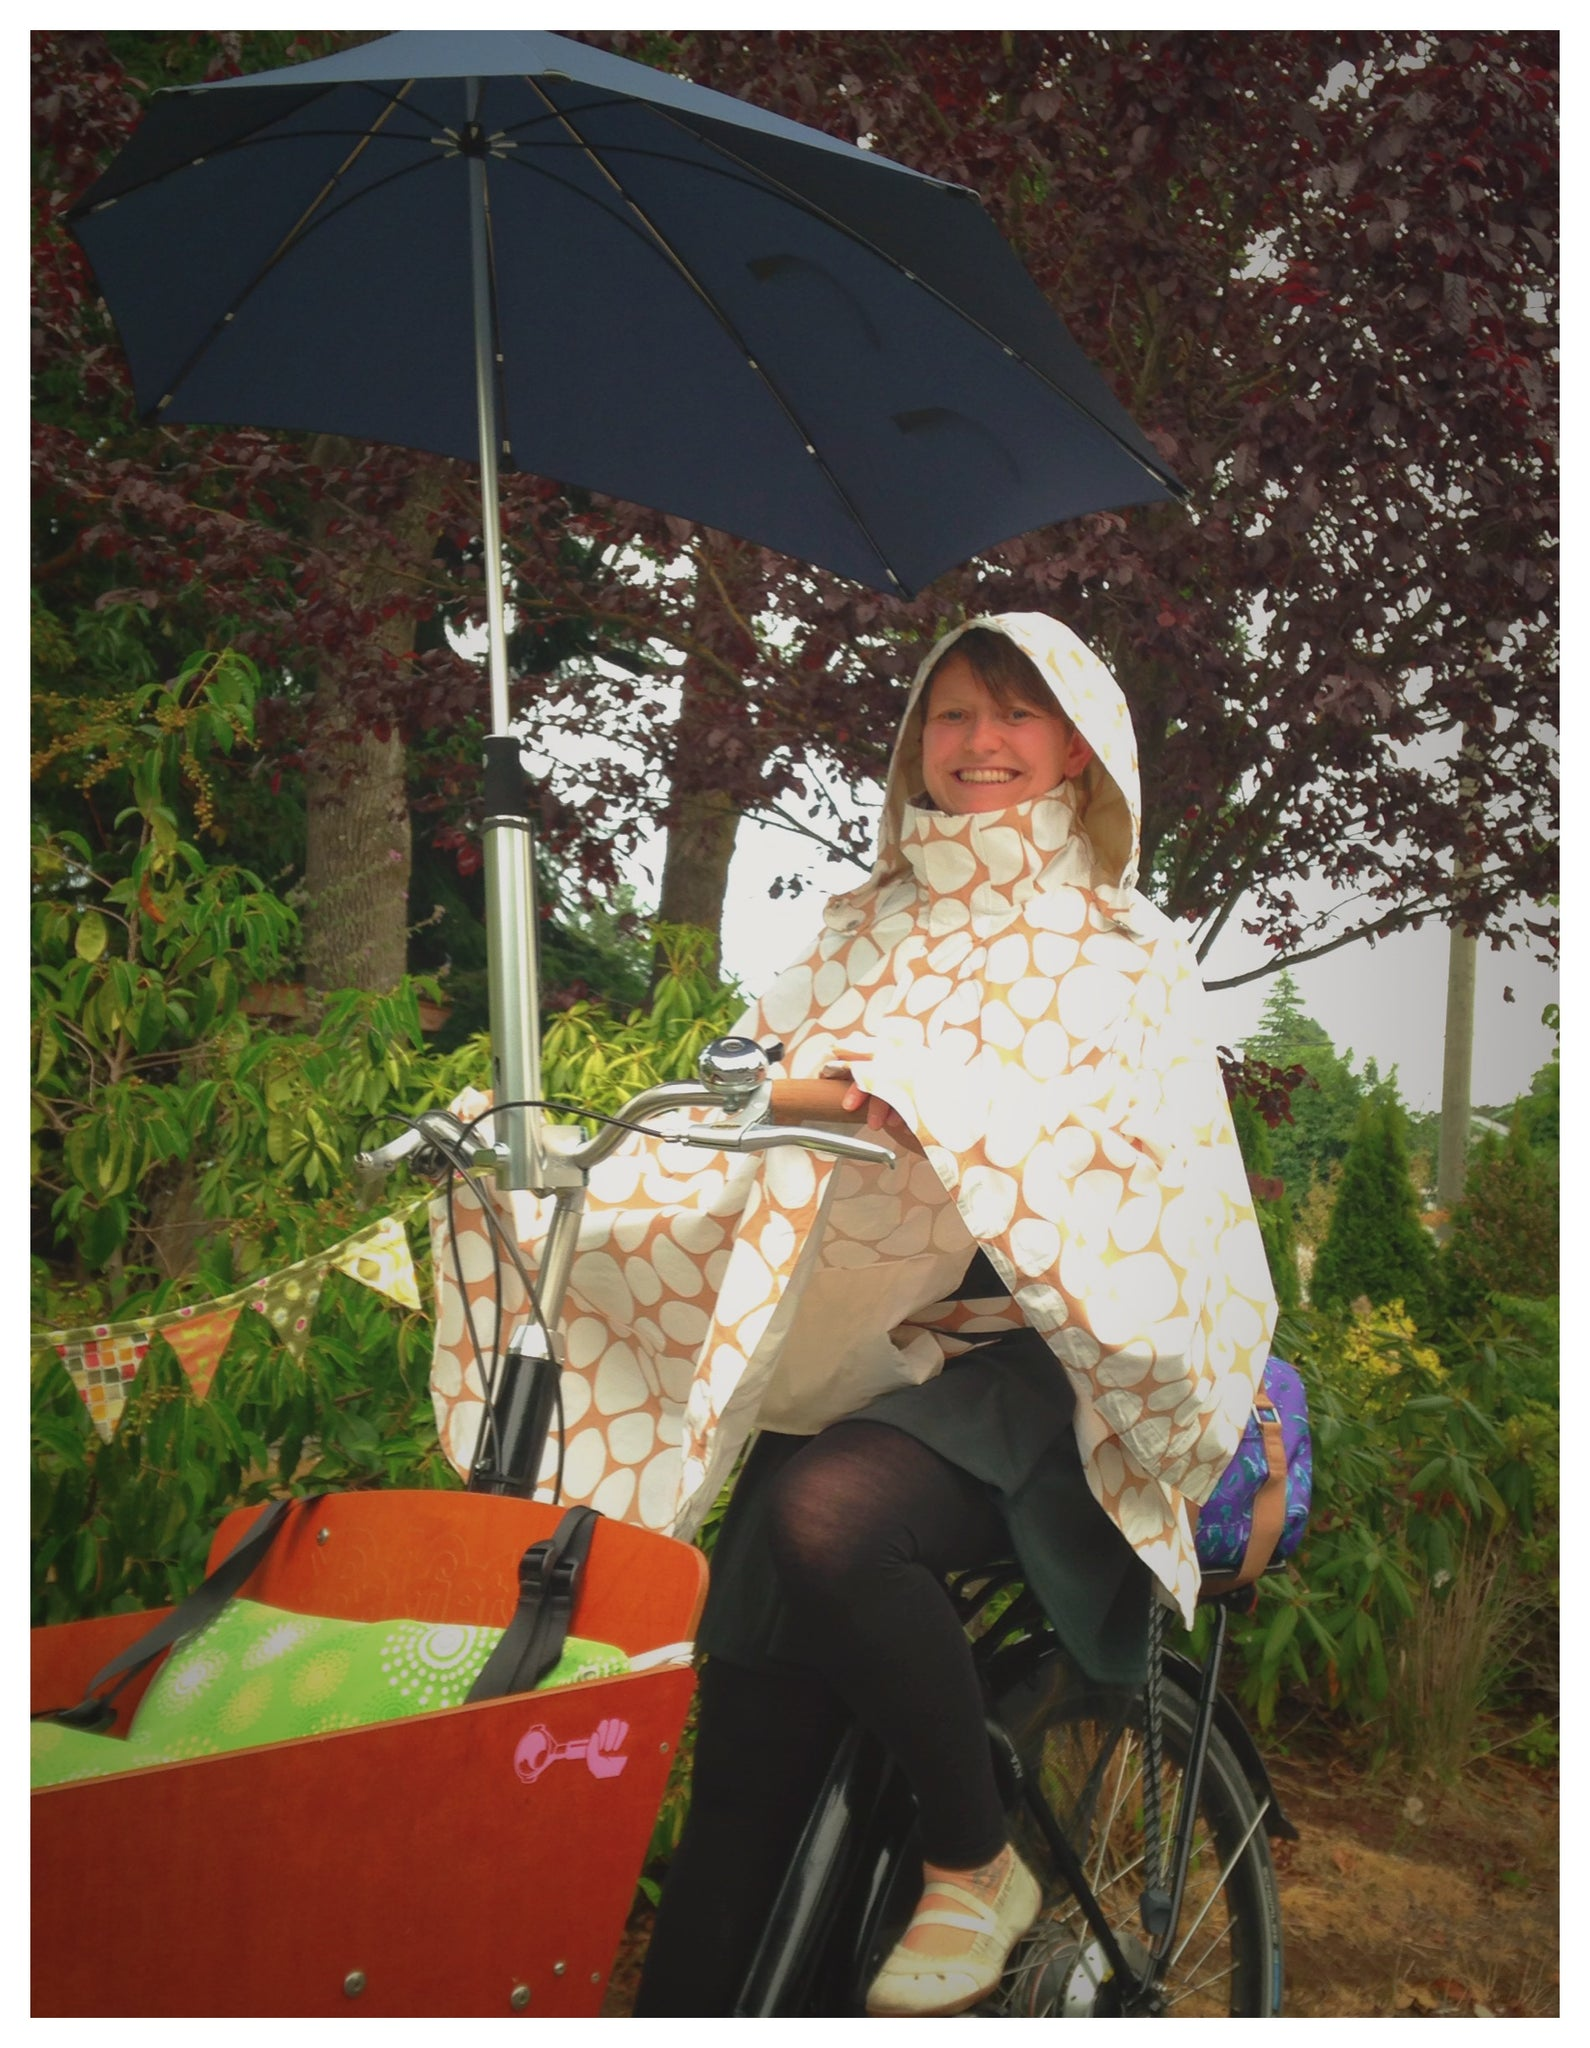 Olena Russell's curated picks for summer cycling for Le Velo Victoria Featuring HappyRainyDays Rain Capes